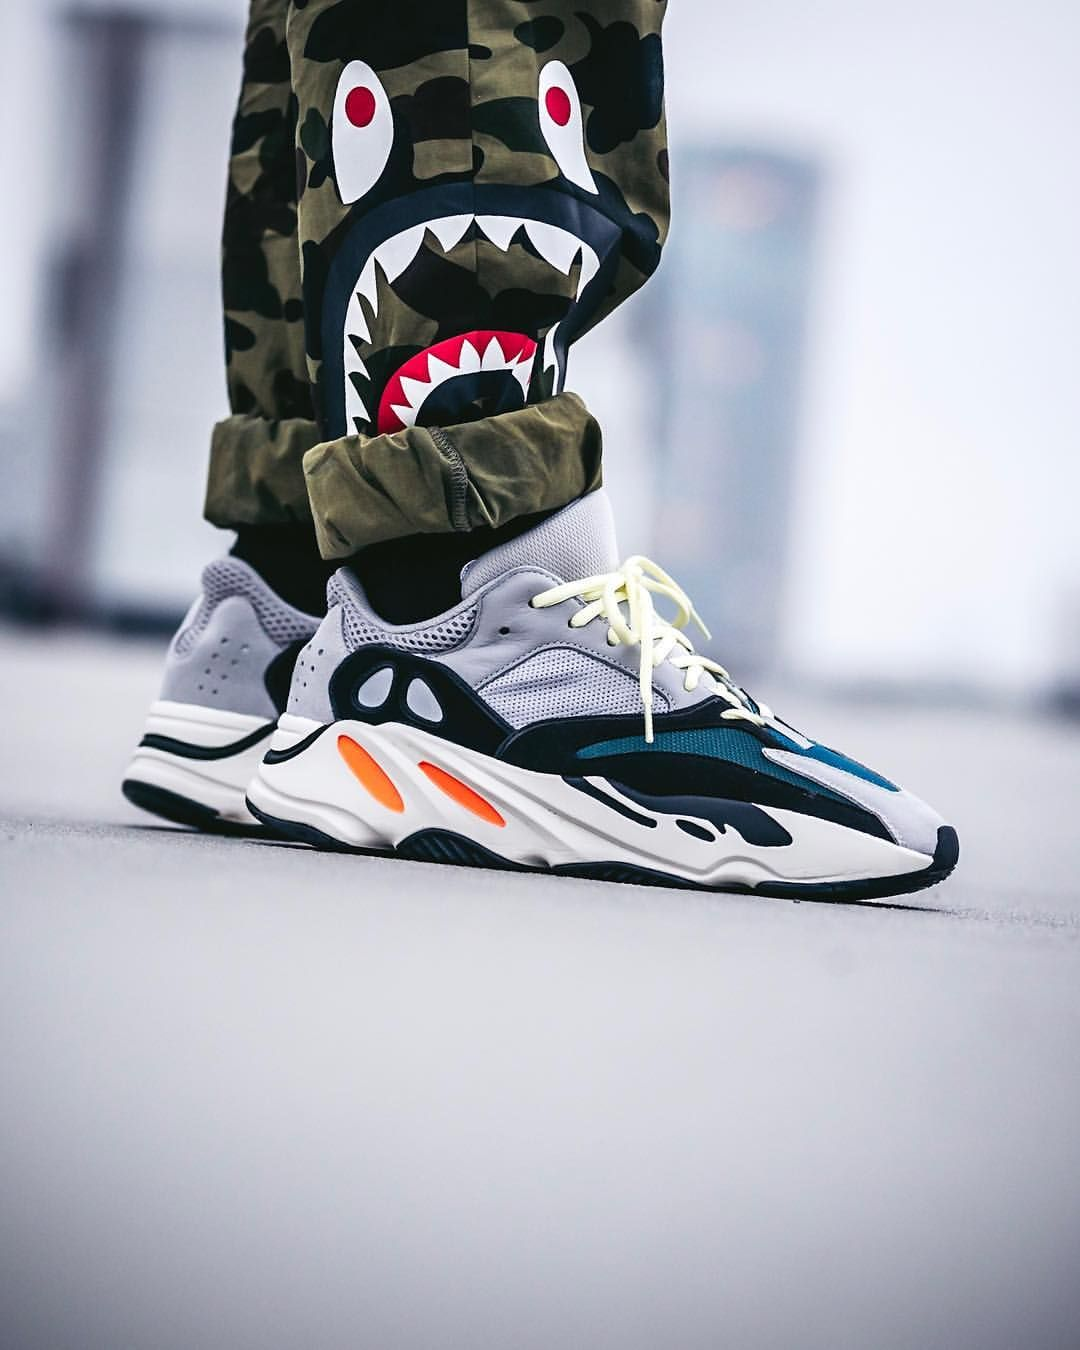 fcce050b9d4be adidas Yeezy Wave Runner